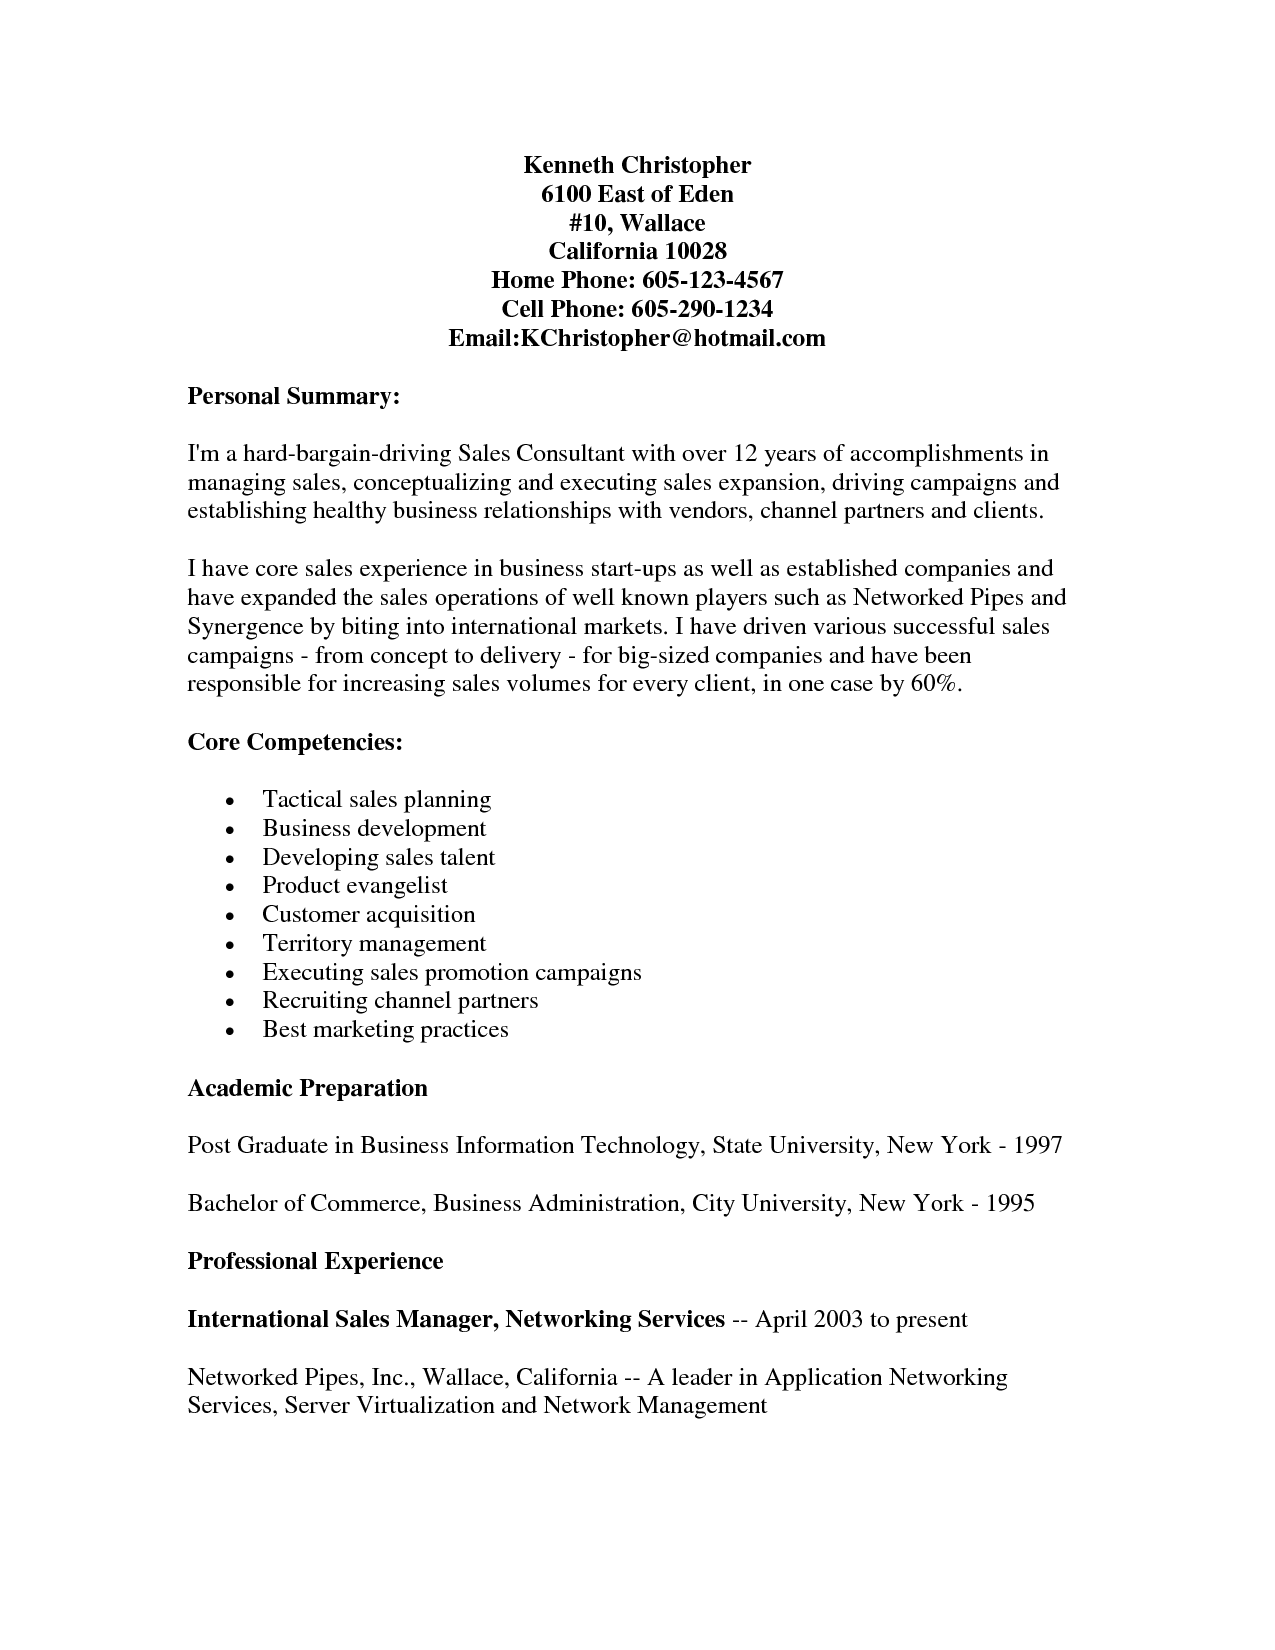 Professional Resume Sample Word Format Best Resume Templates Best Resume Templates Free Download